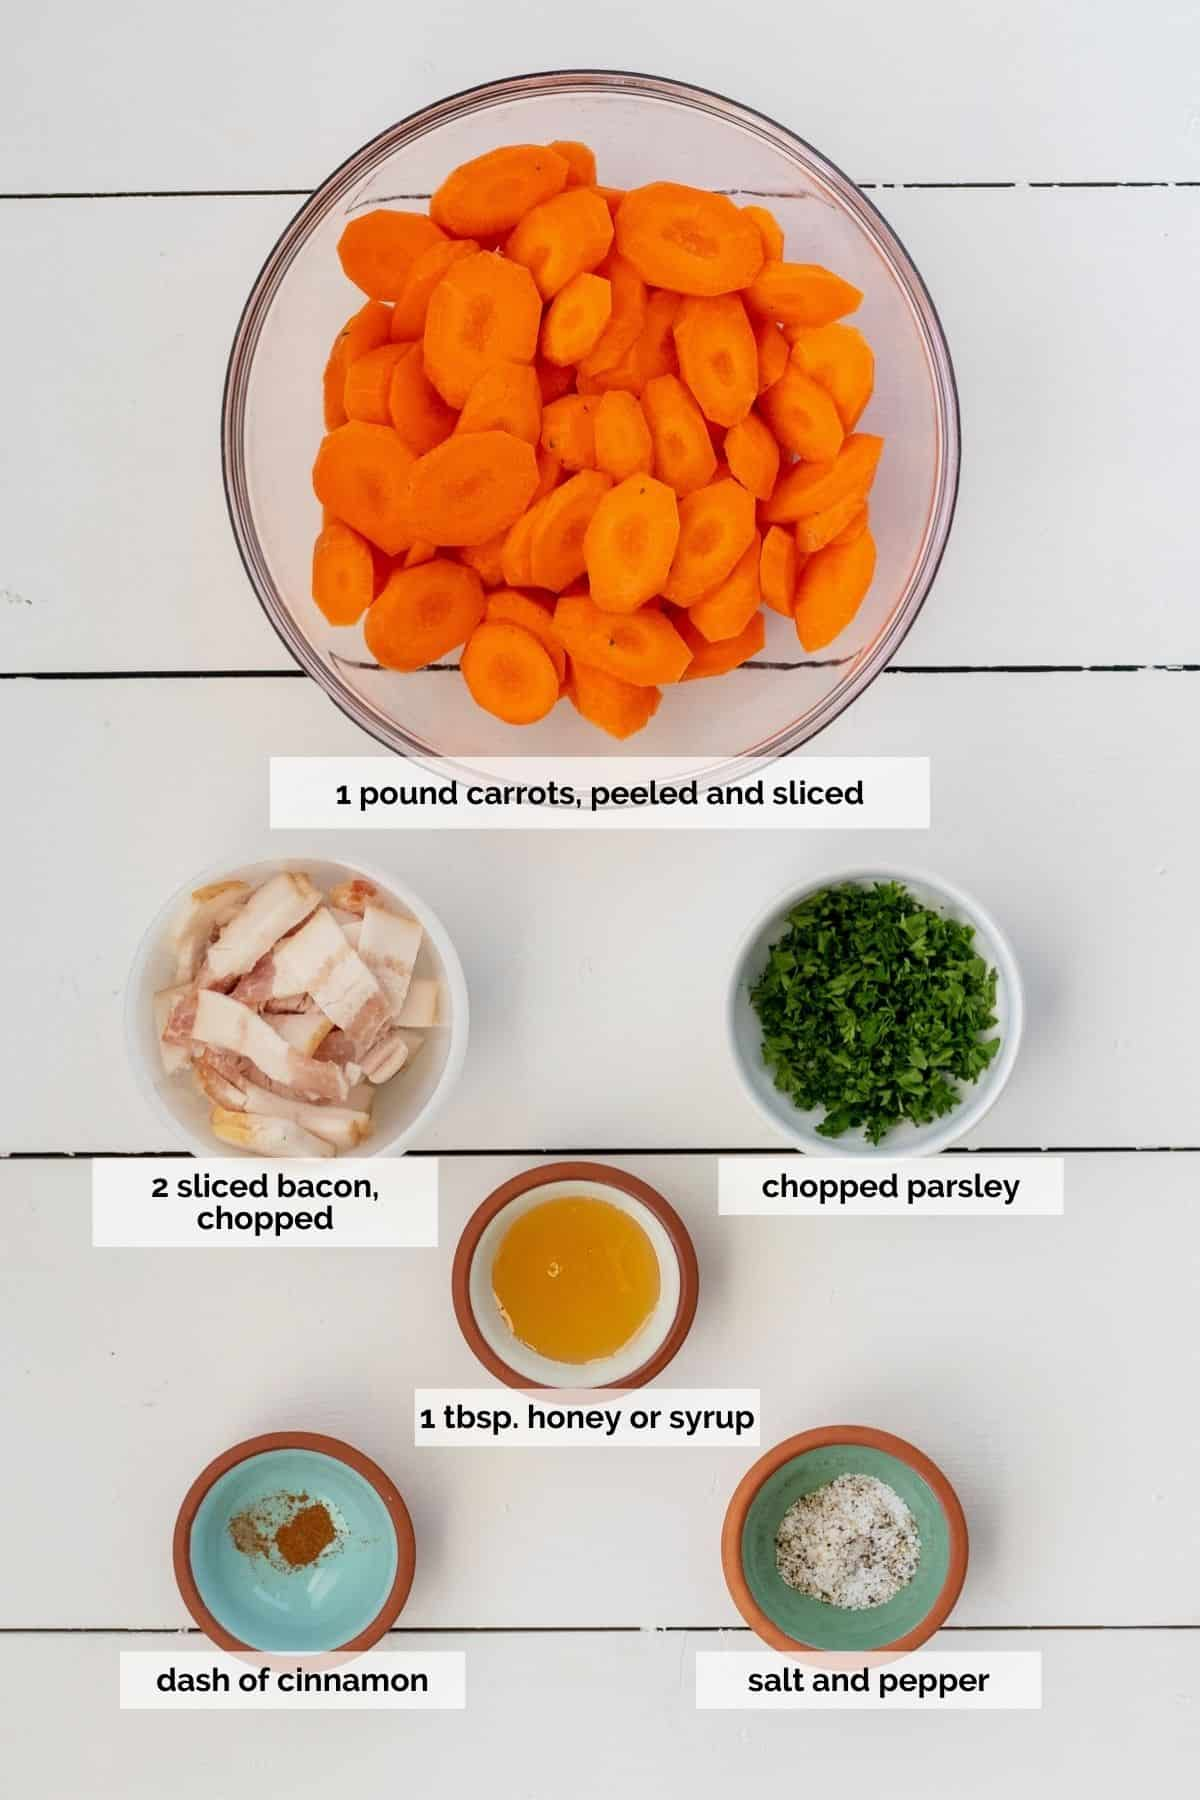 Ingredients needed to make sautéed carrots